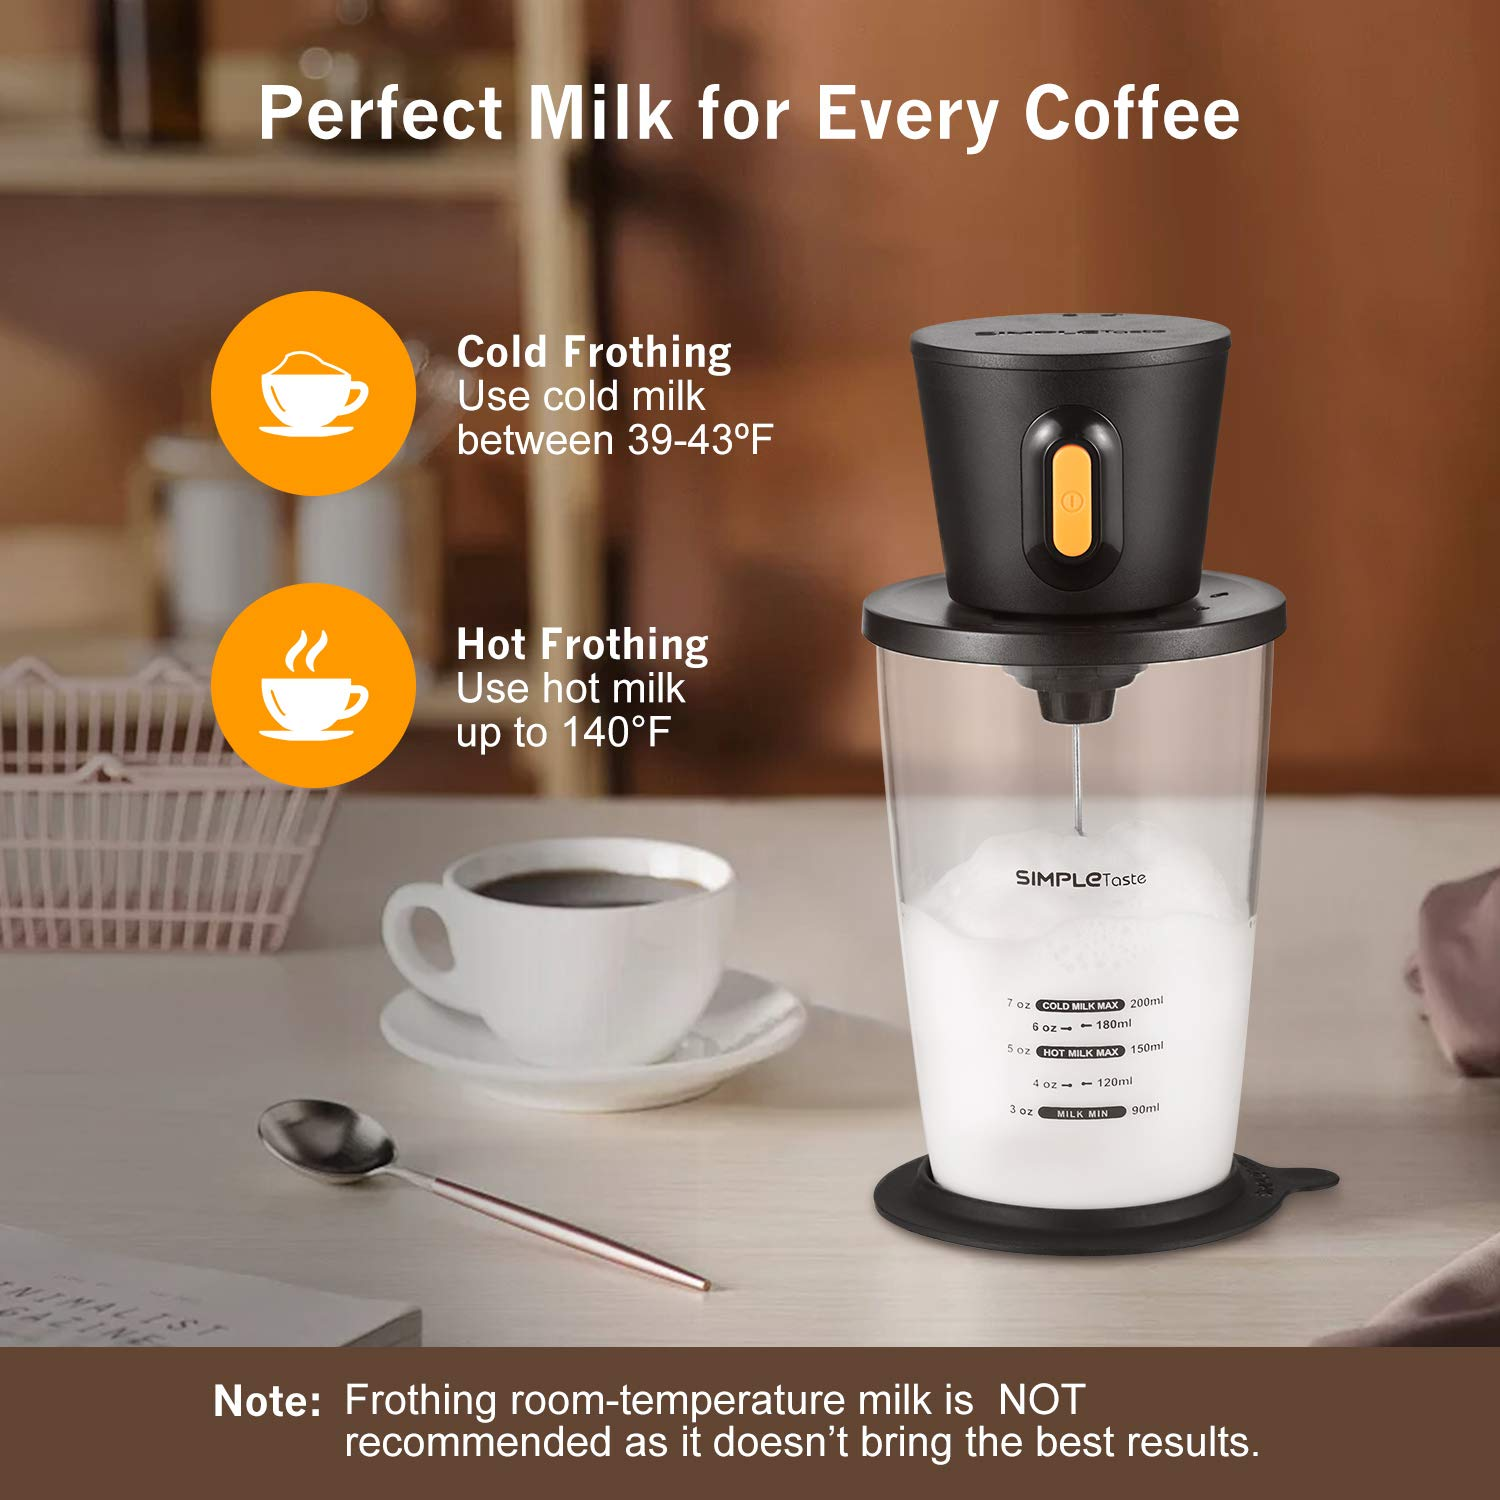 SIMPLETASTE Electric Milk Frother Automatic Battery Operated Foam Maker Coffee, Cappuccino and Latte, 3.74 x 3.74 x 7.68 inch, Black by SIMPLETASTE (Image #5)